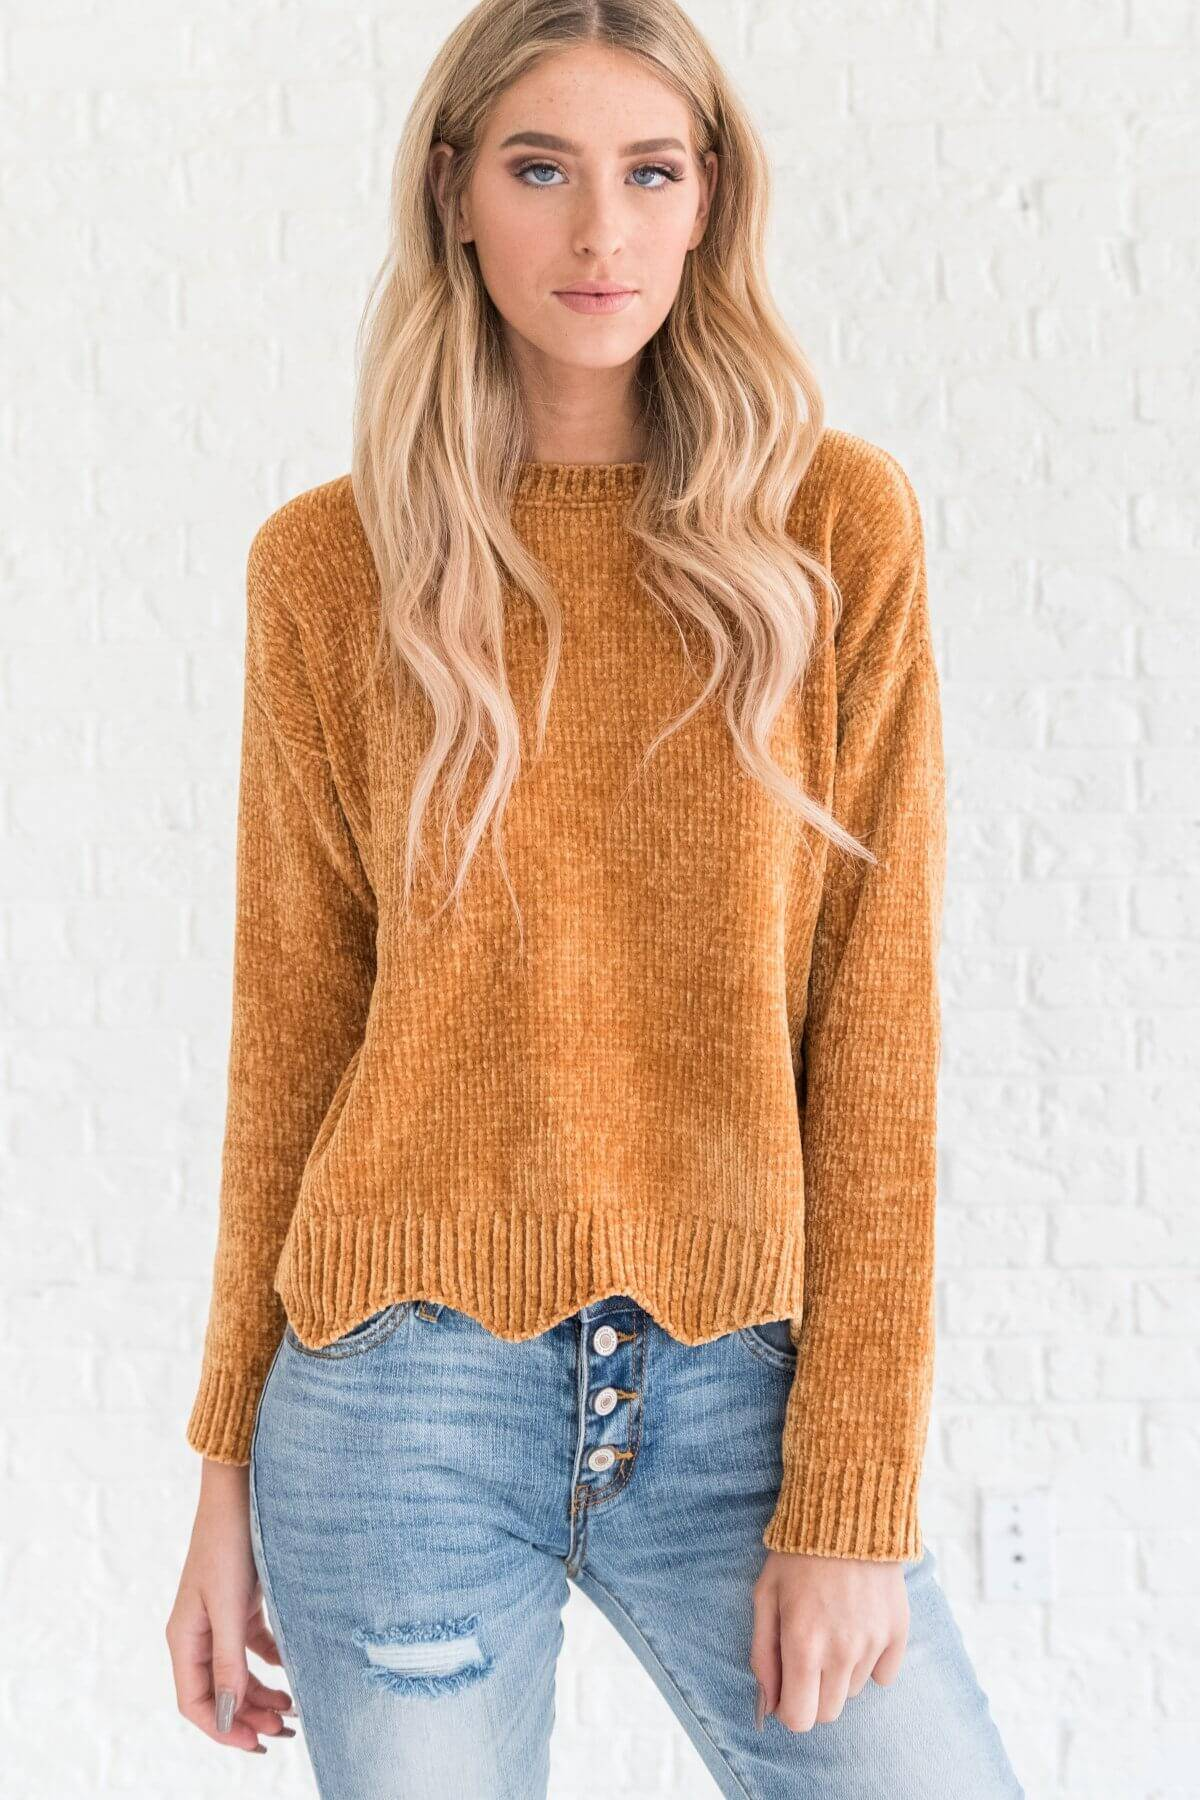 Mustard Yellow Soft Knit Chenille Scalloped Sweaters